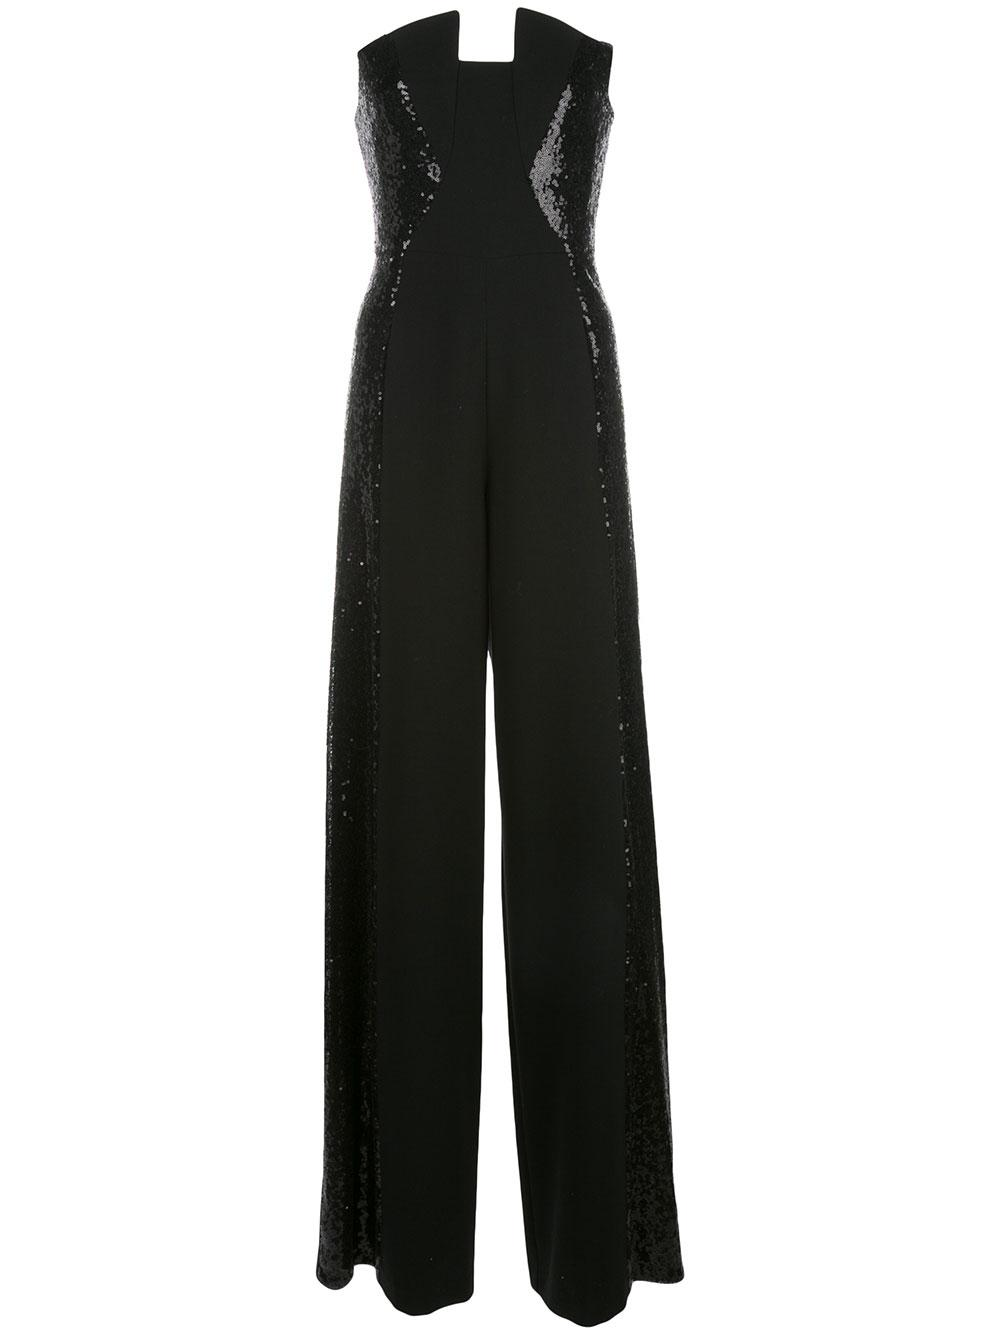 Sequin Lena Cb Jumpsuit Item # 9681169